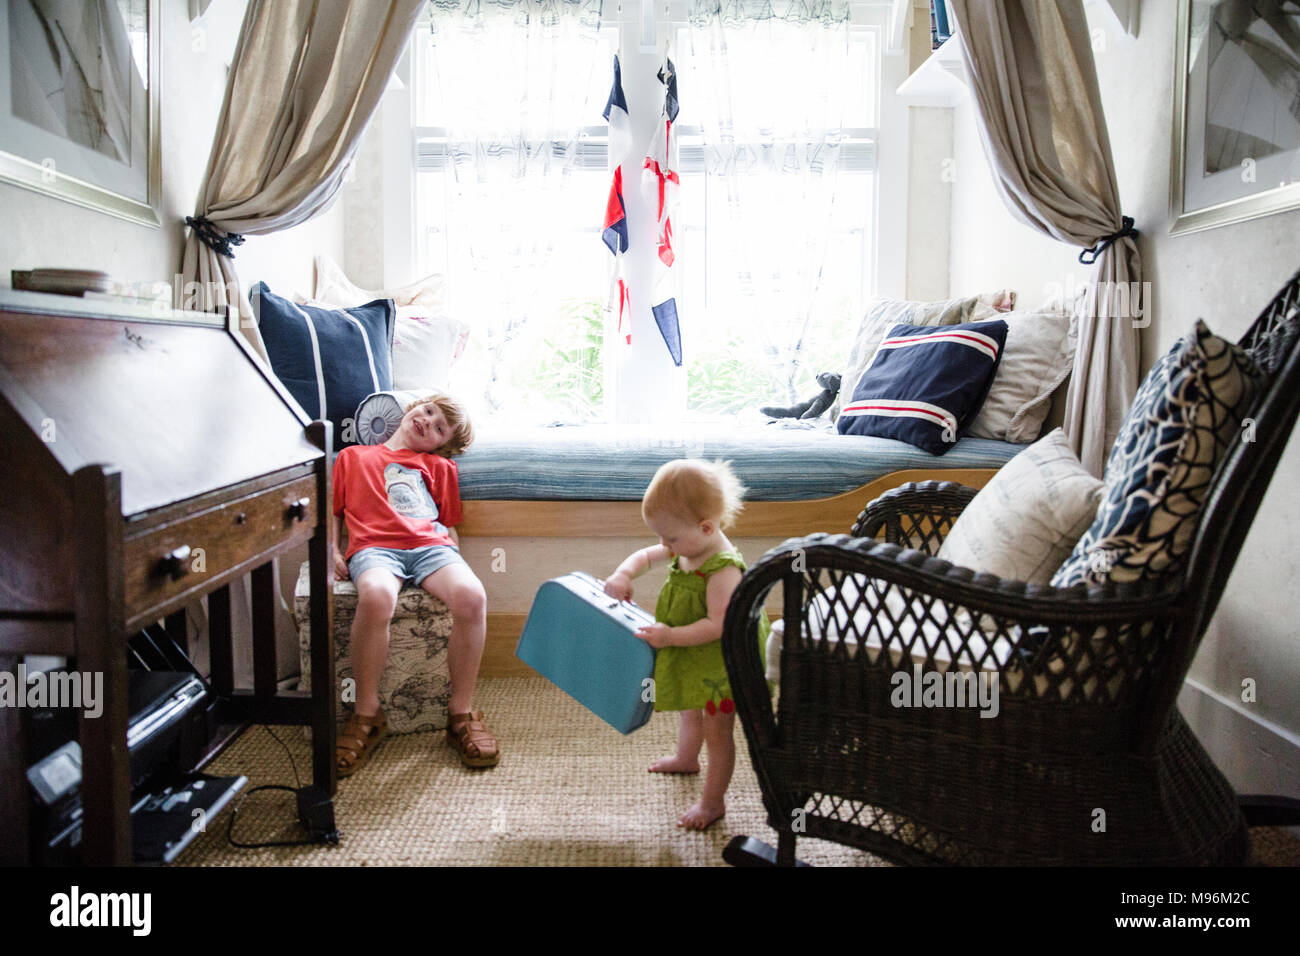 Boy and baby in nautical style bedroom - Stock Image